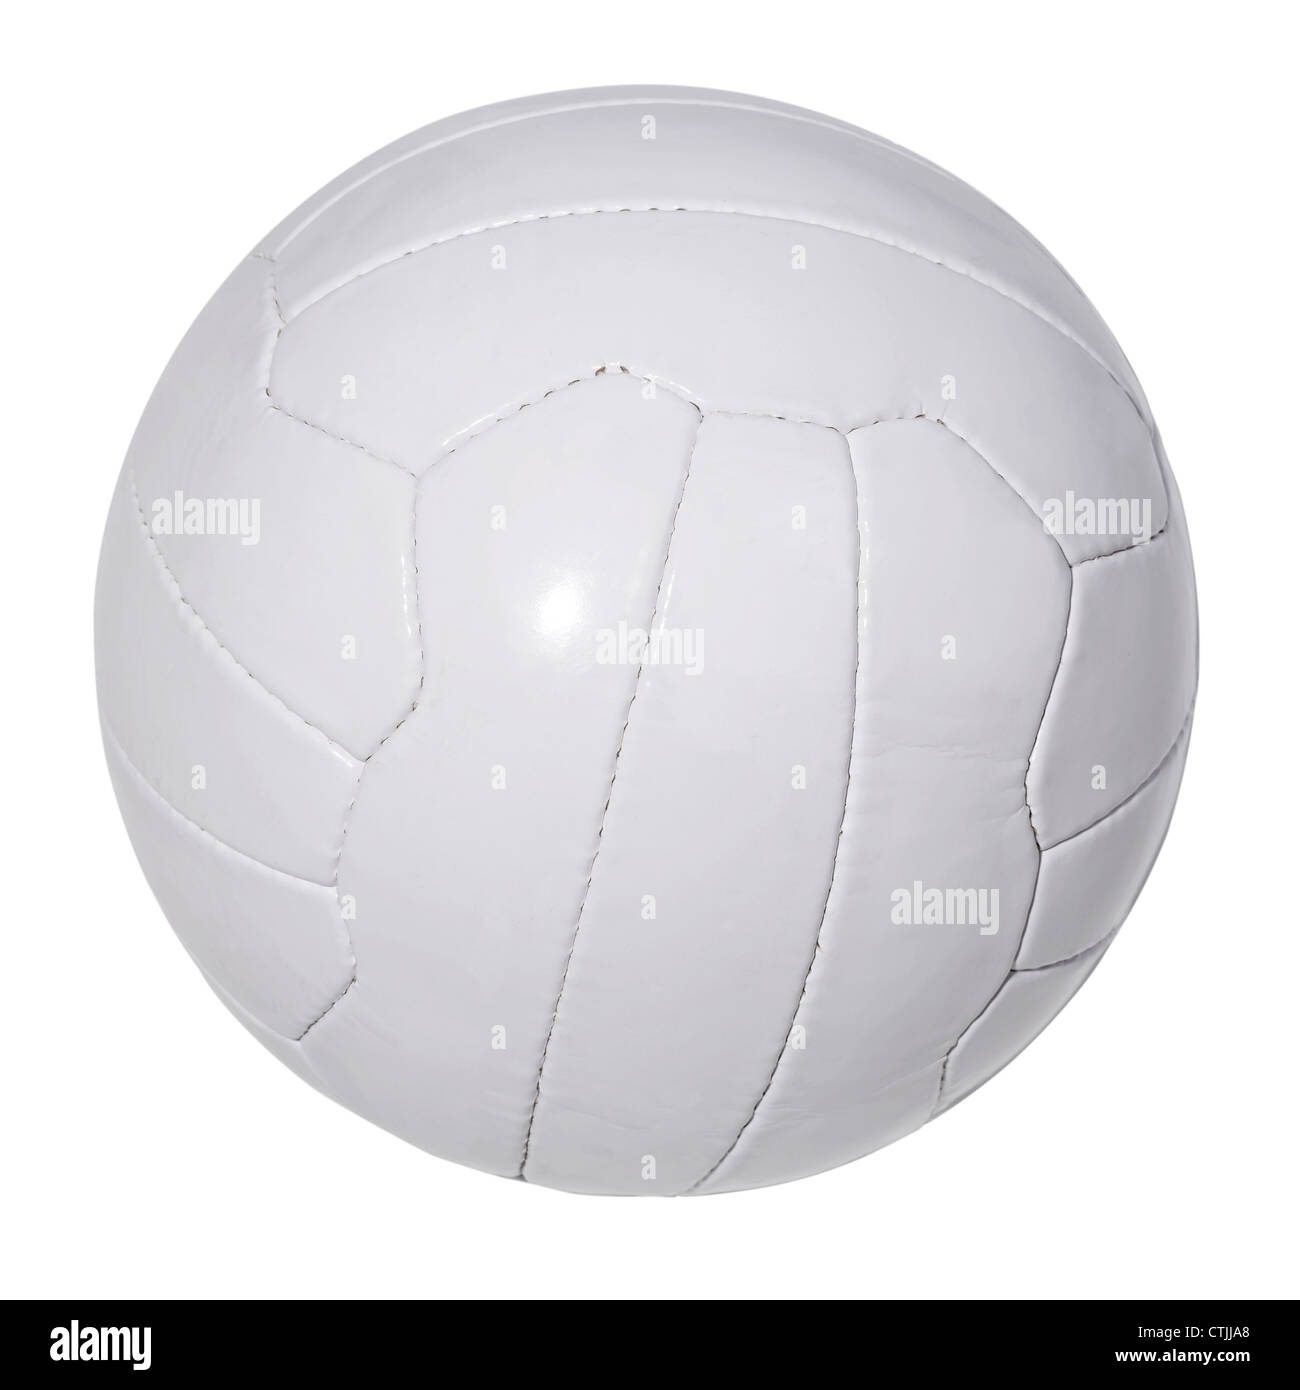 White leather football - Stock Image